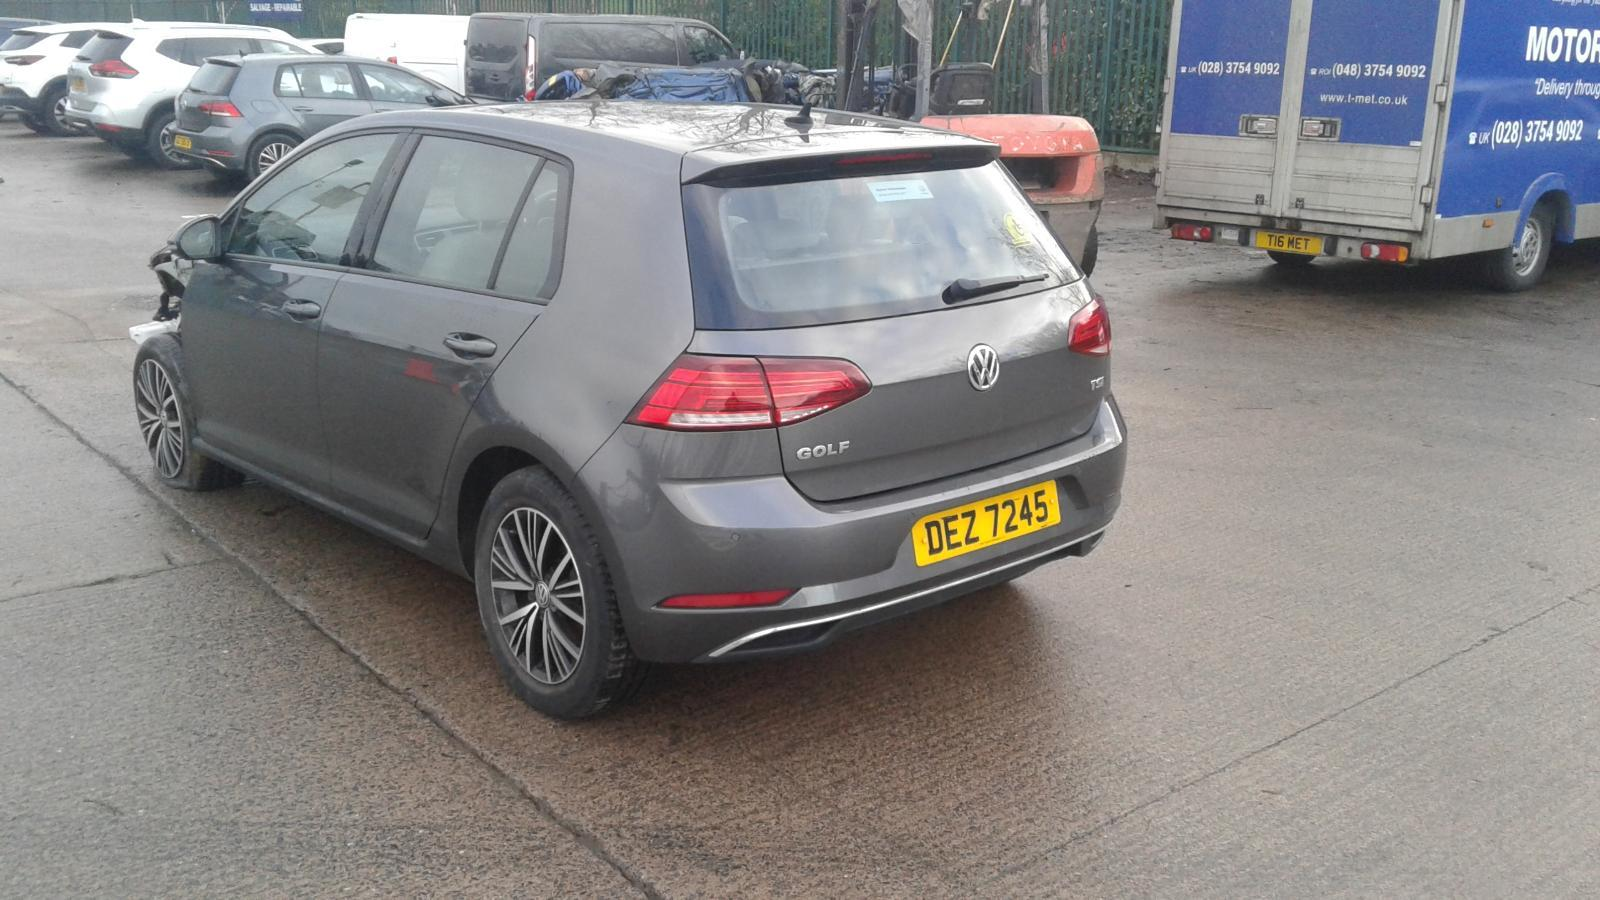 2017 VOLKSWAGEN GOLF AUTOMATIC FOR SALE £7900 ONO Image